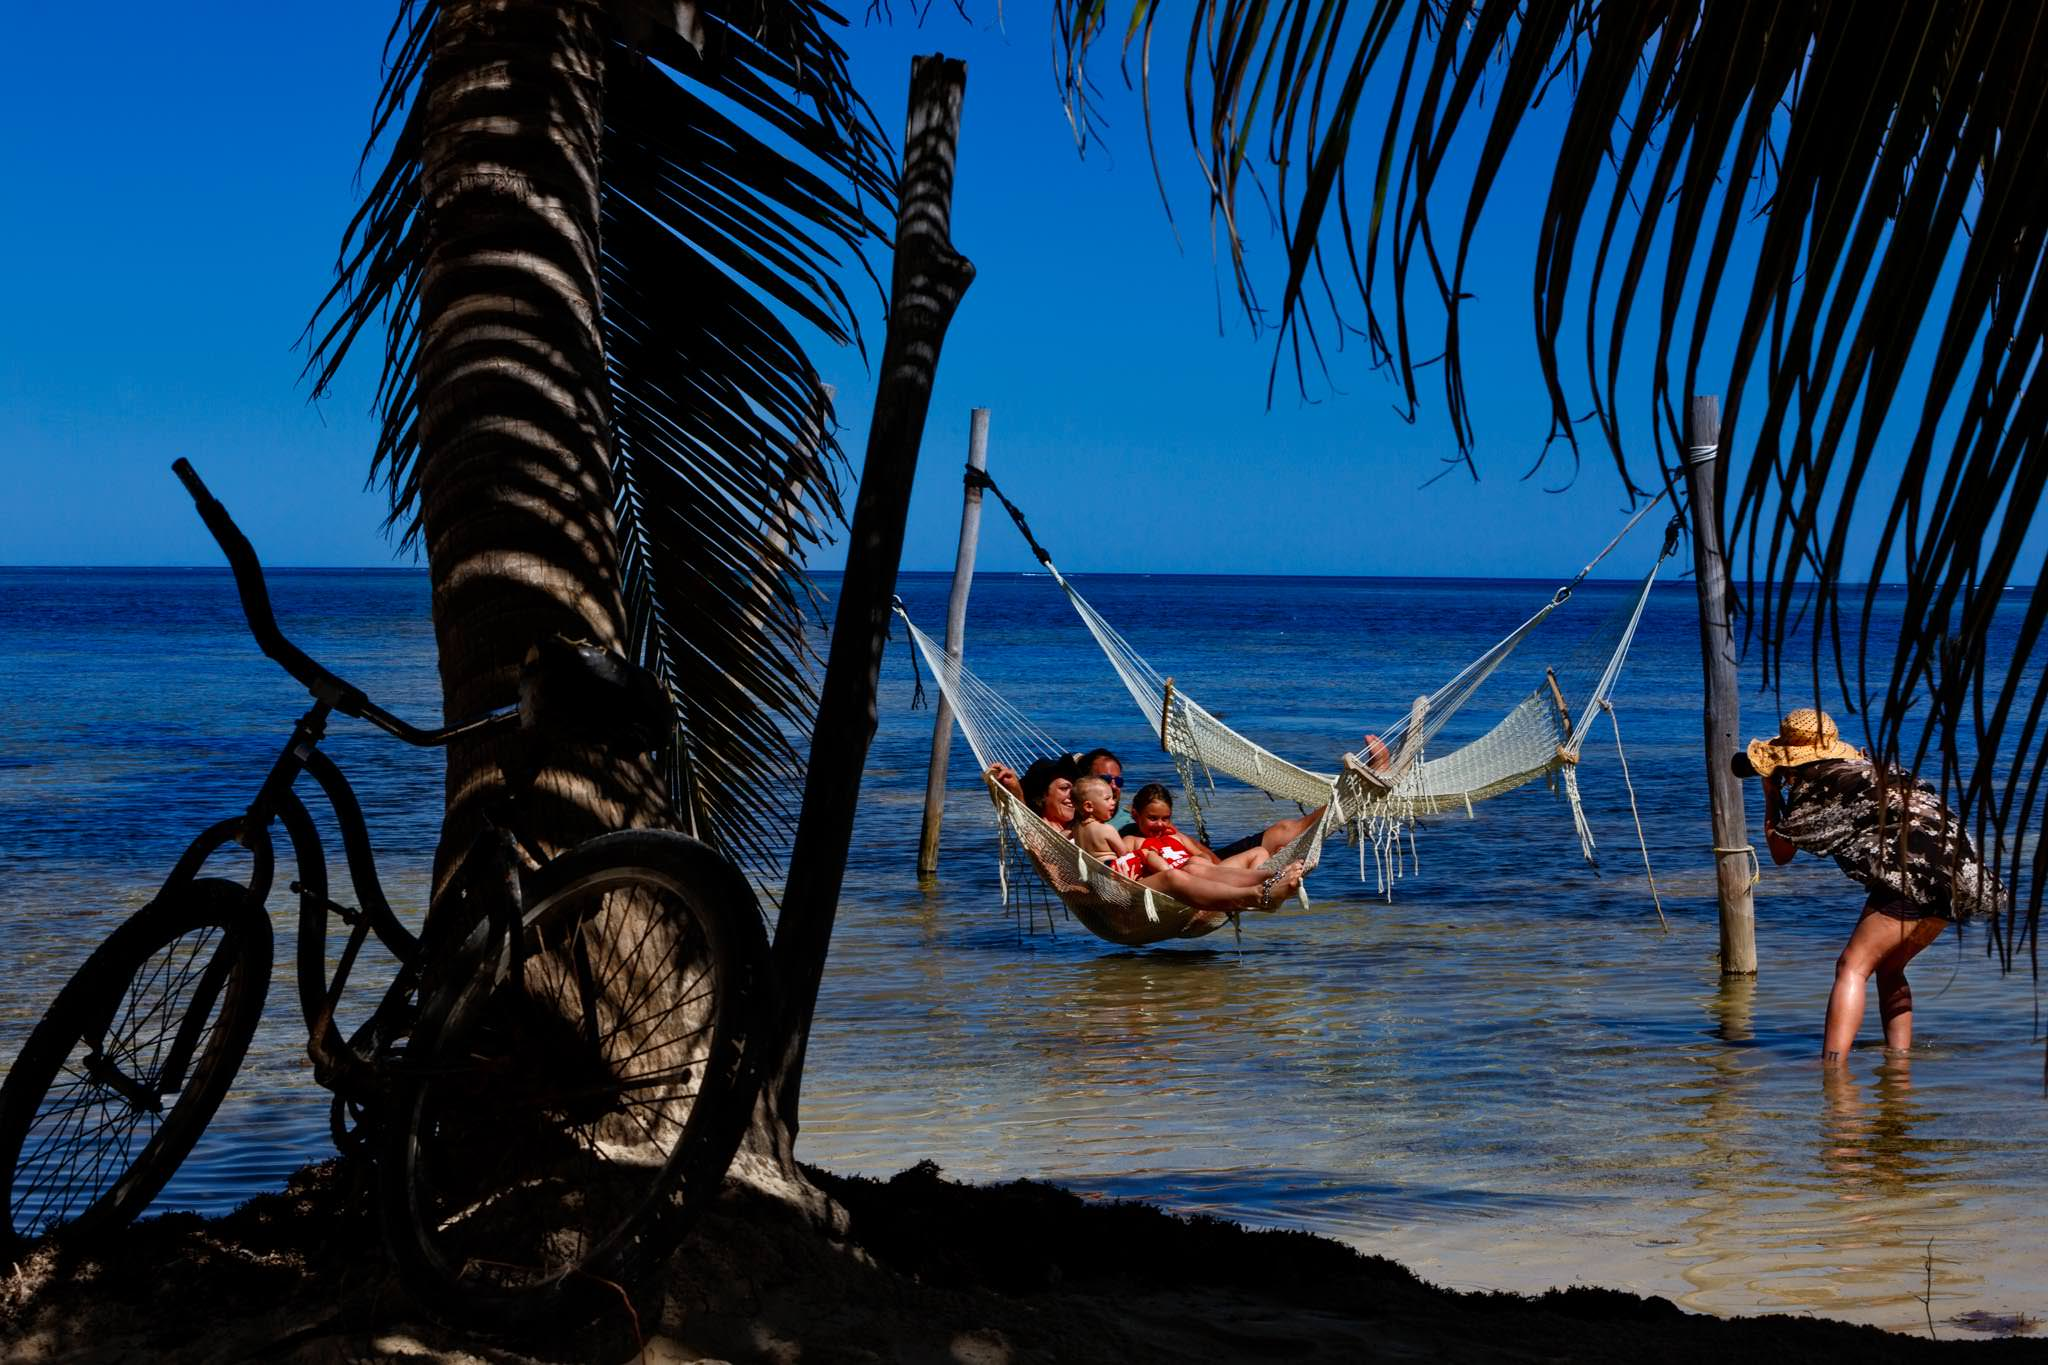 Photographer shooting in water in Belize with family in hammock